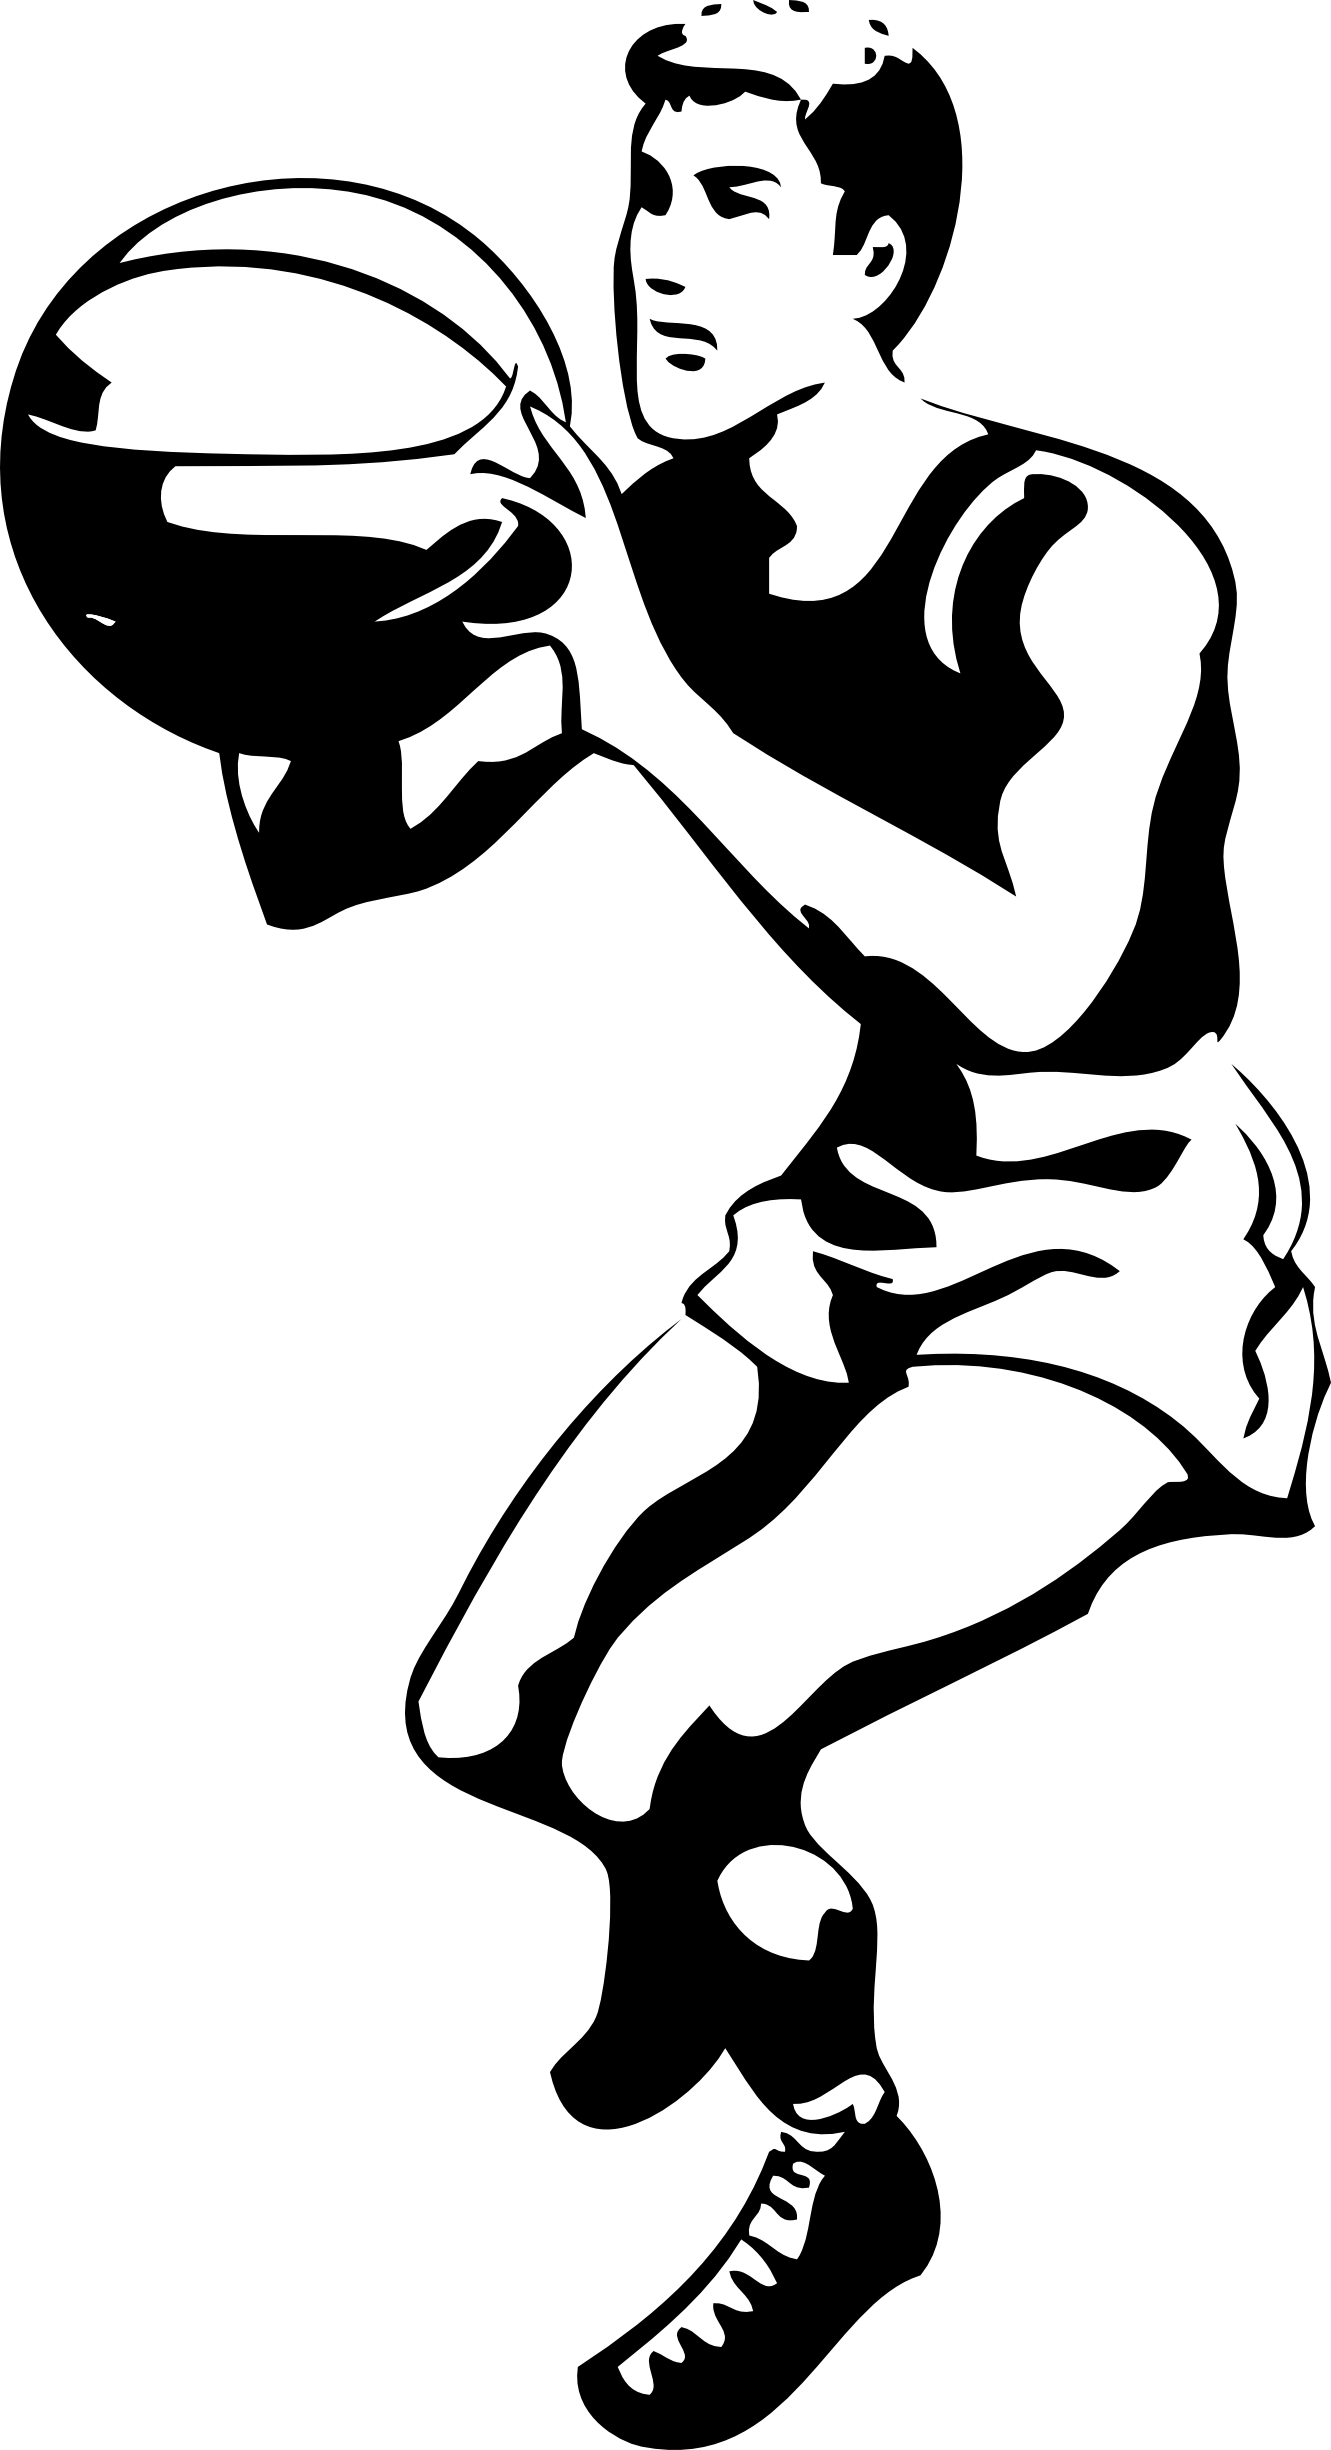 image stock Sport clipart black and white. Basketball player panda free